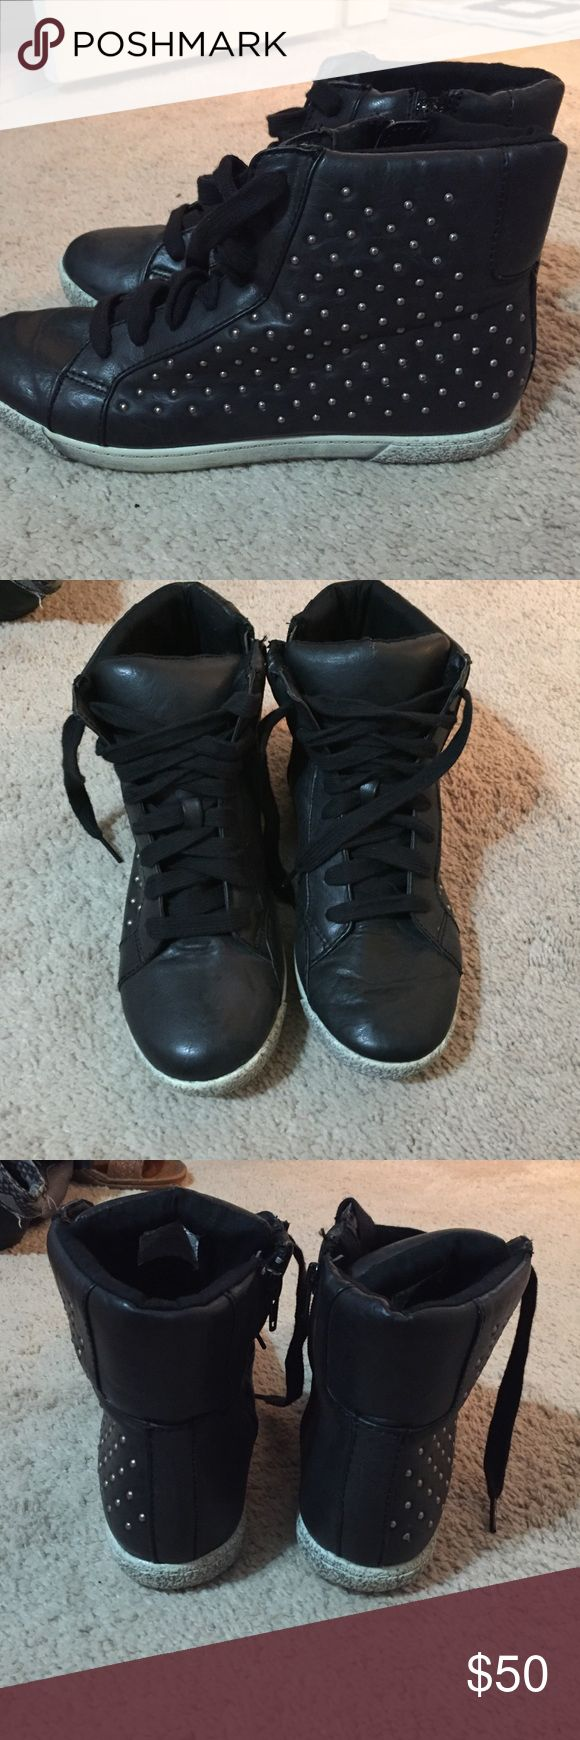 hightop studded sneakers worn once size 9 Shoes Sneakers